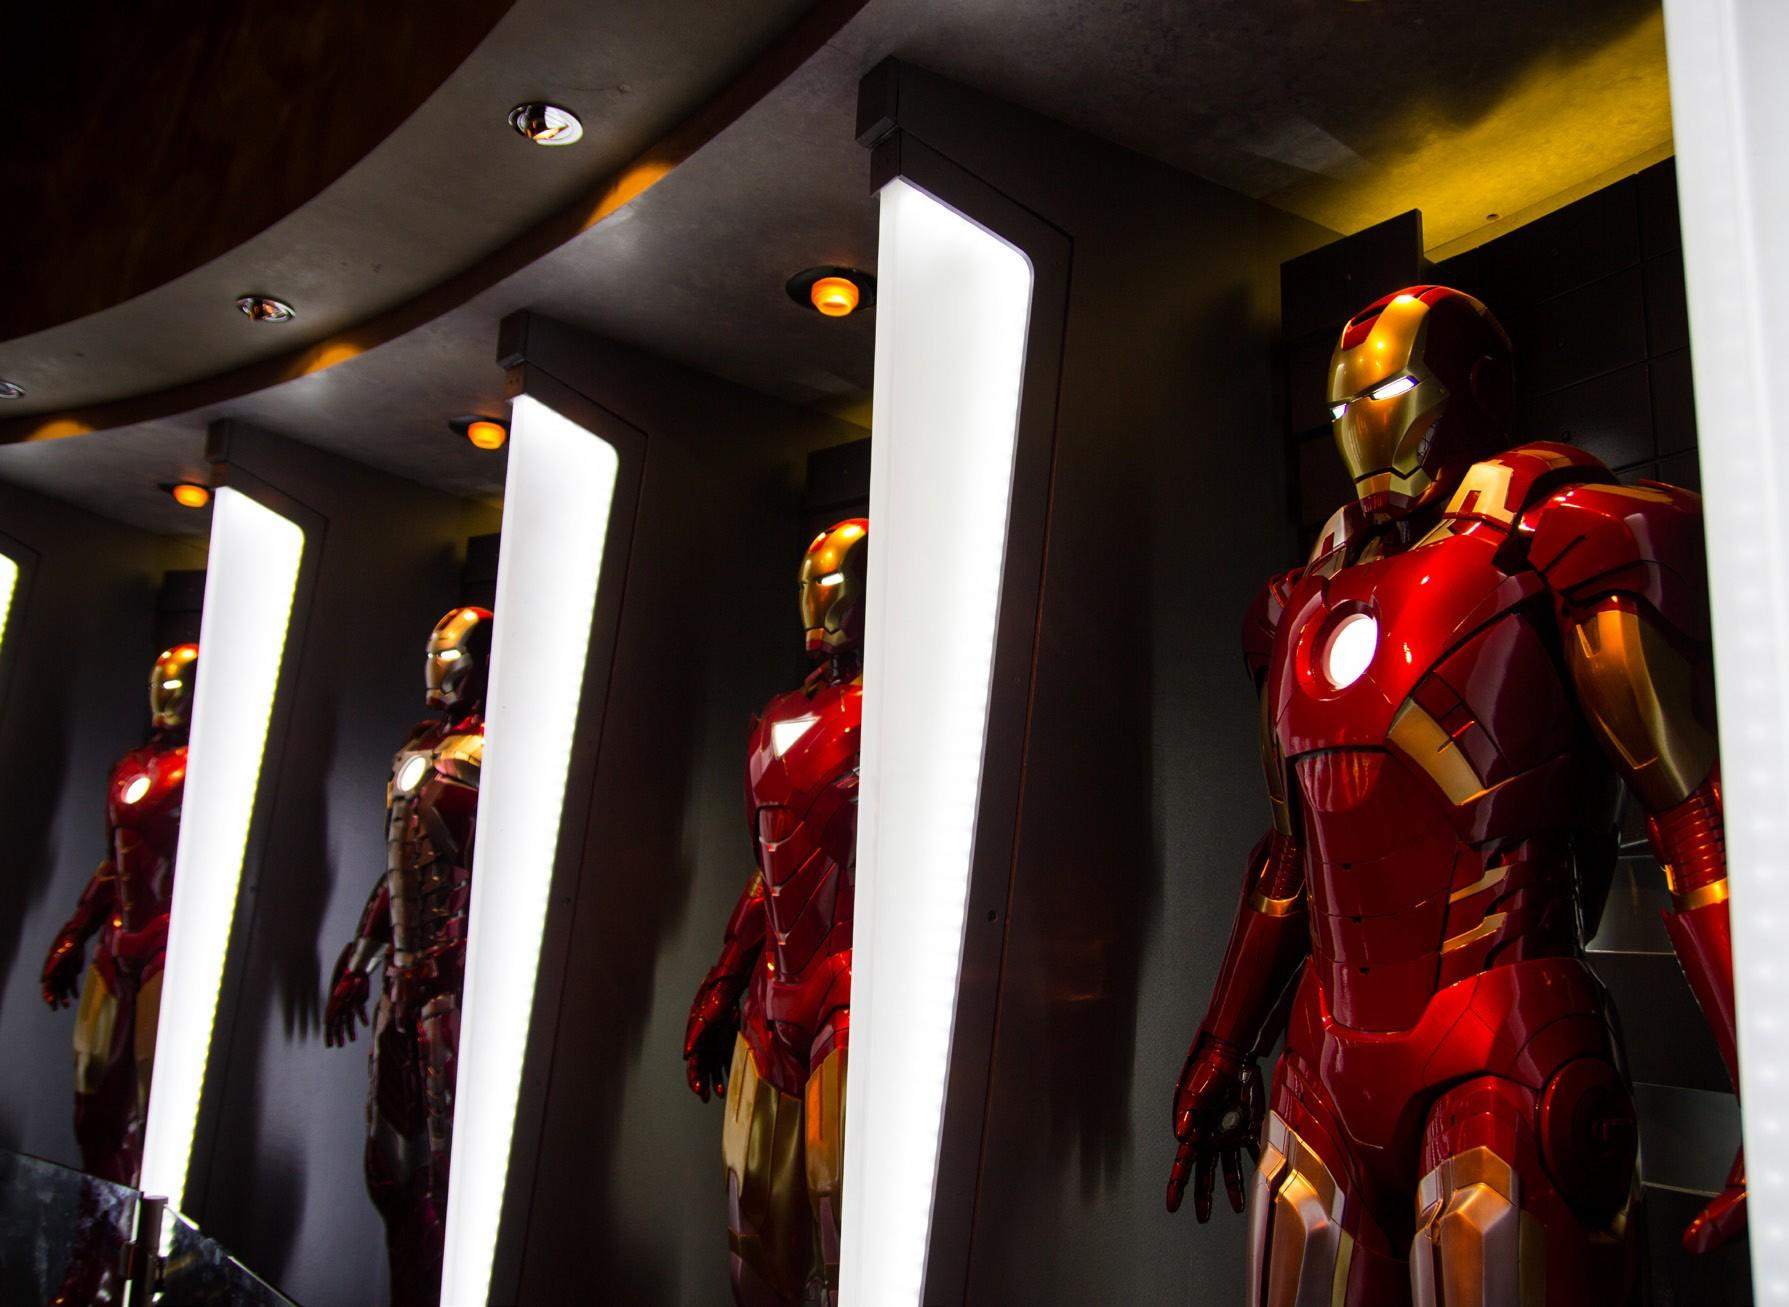 Despite the massive box office success of recent superhero movies such as the Iron Man series, there have been few female characters - and even fewer female leads - in this film genre. (Harshlight / Creative Commons)